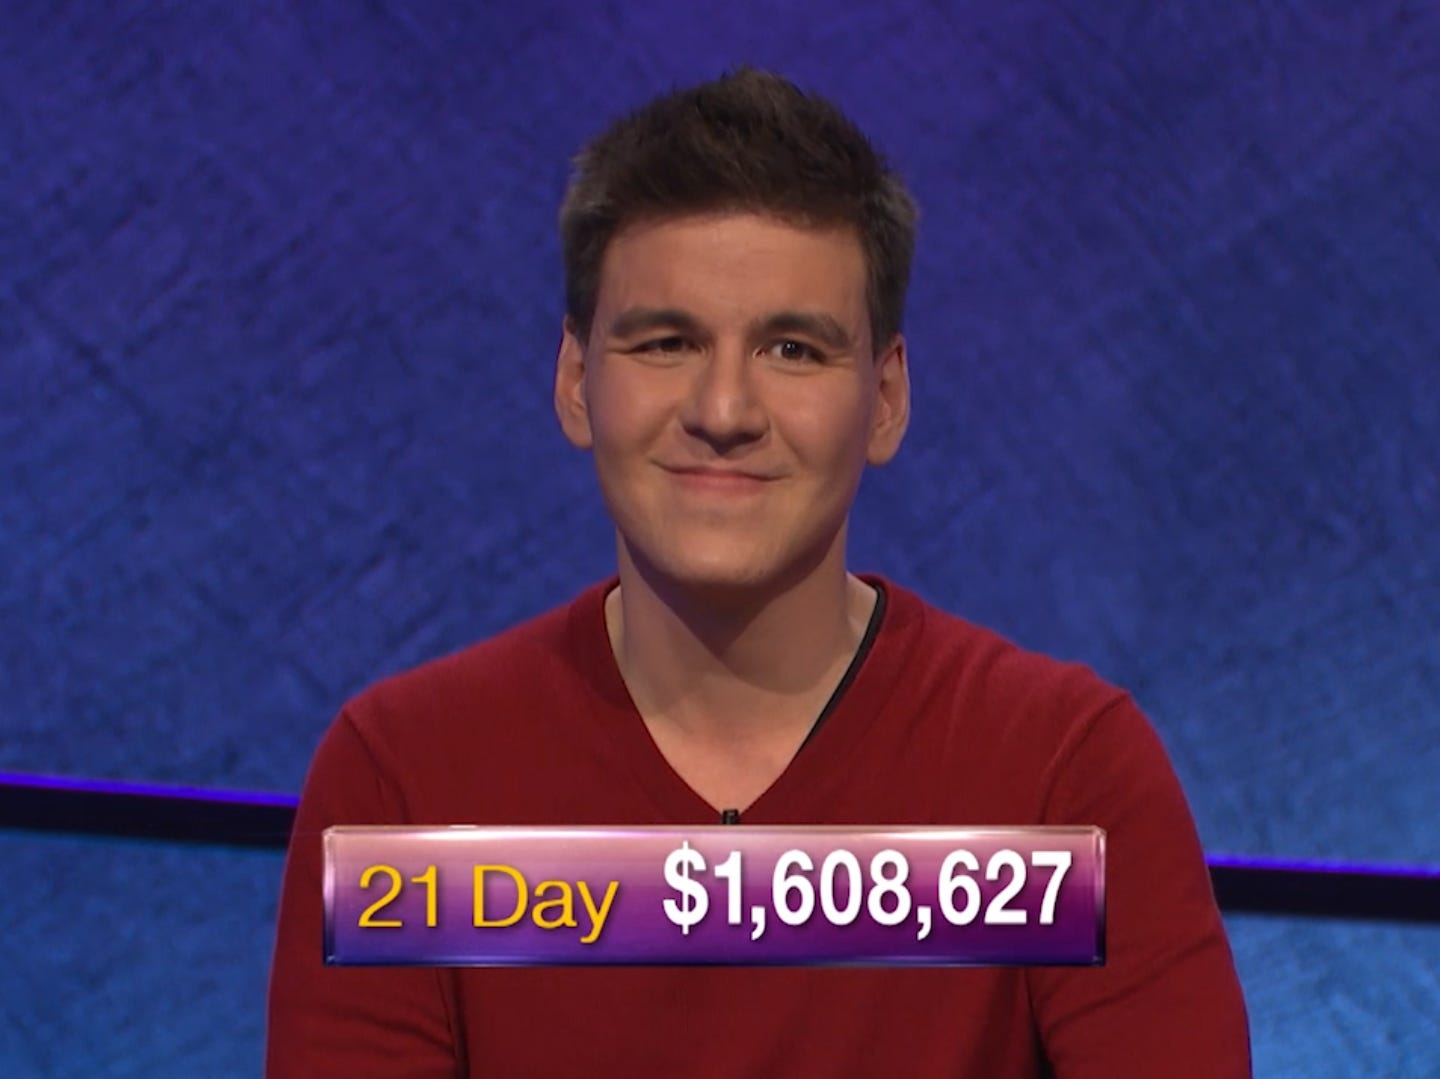 With squeaker win 26, 'Jeopardy!' champ James Holzhauer moves close to another milestone